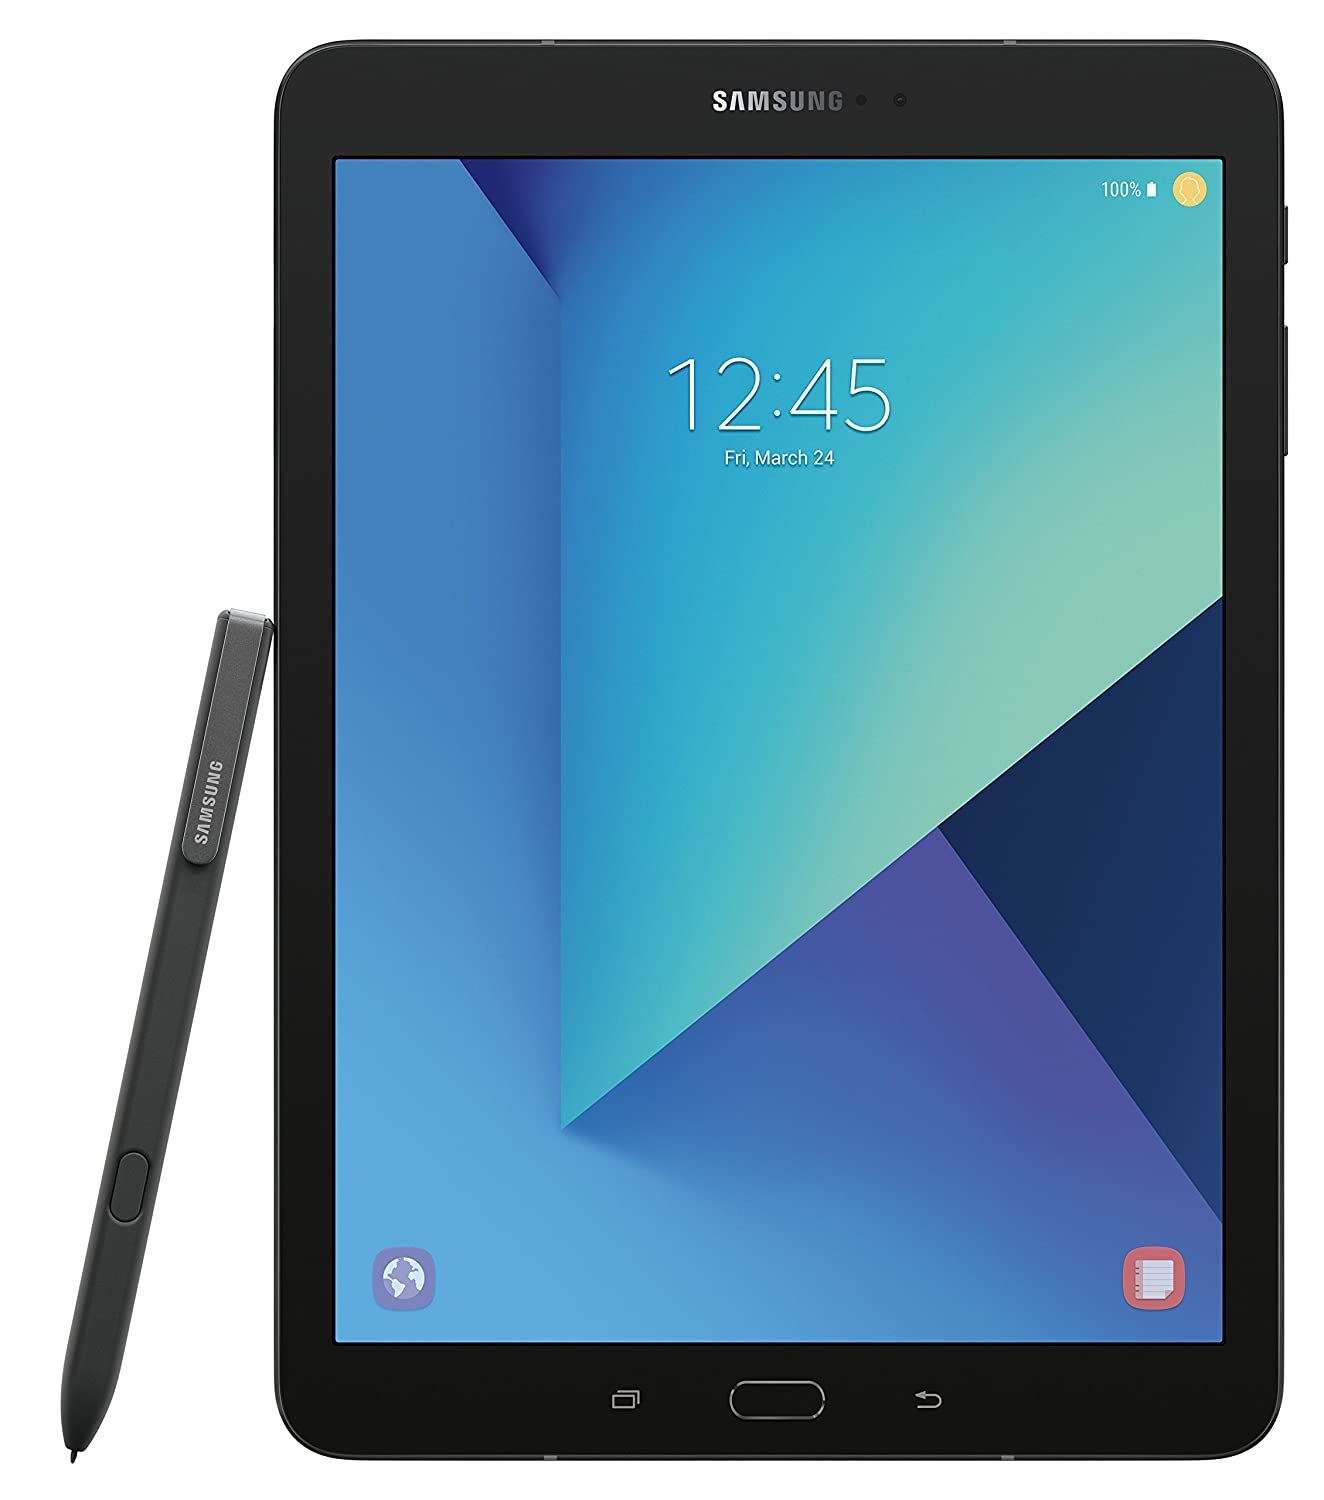 Samsung Galaxy Tab S3 9.7 Review